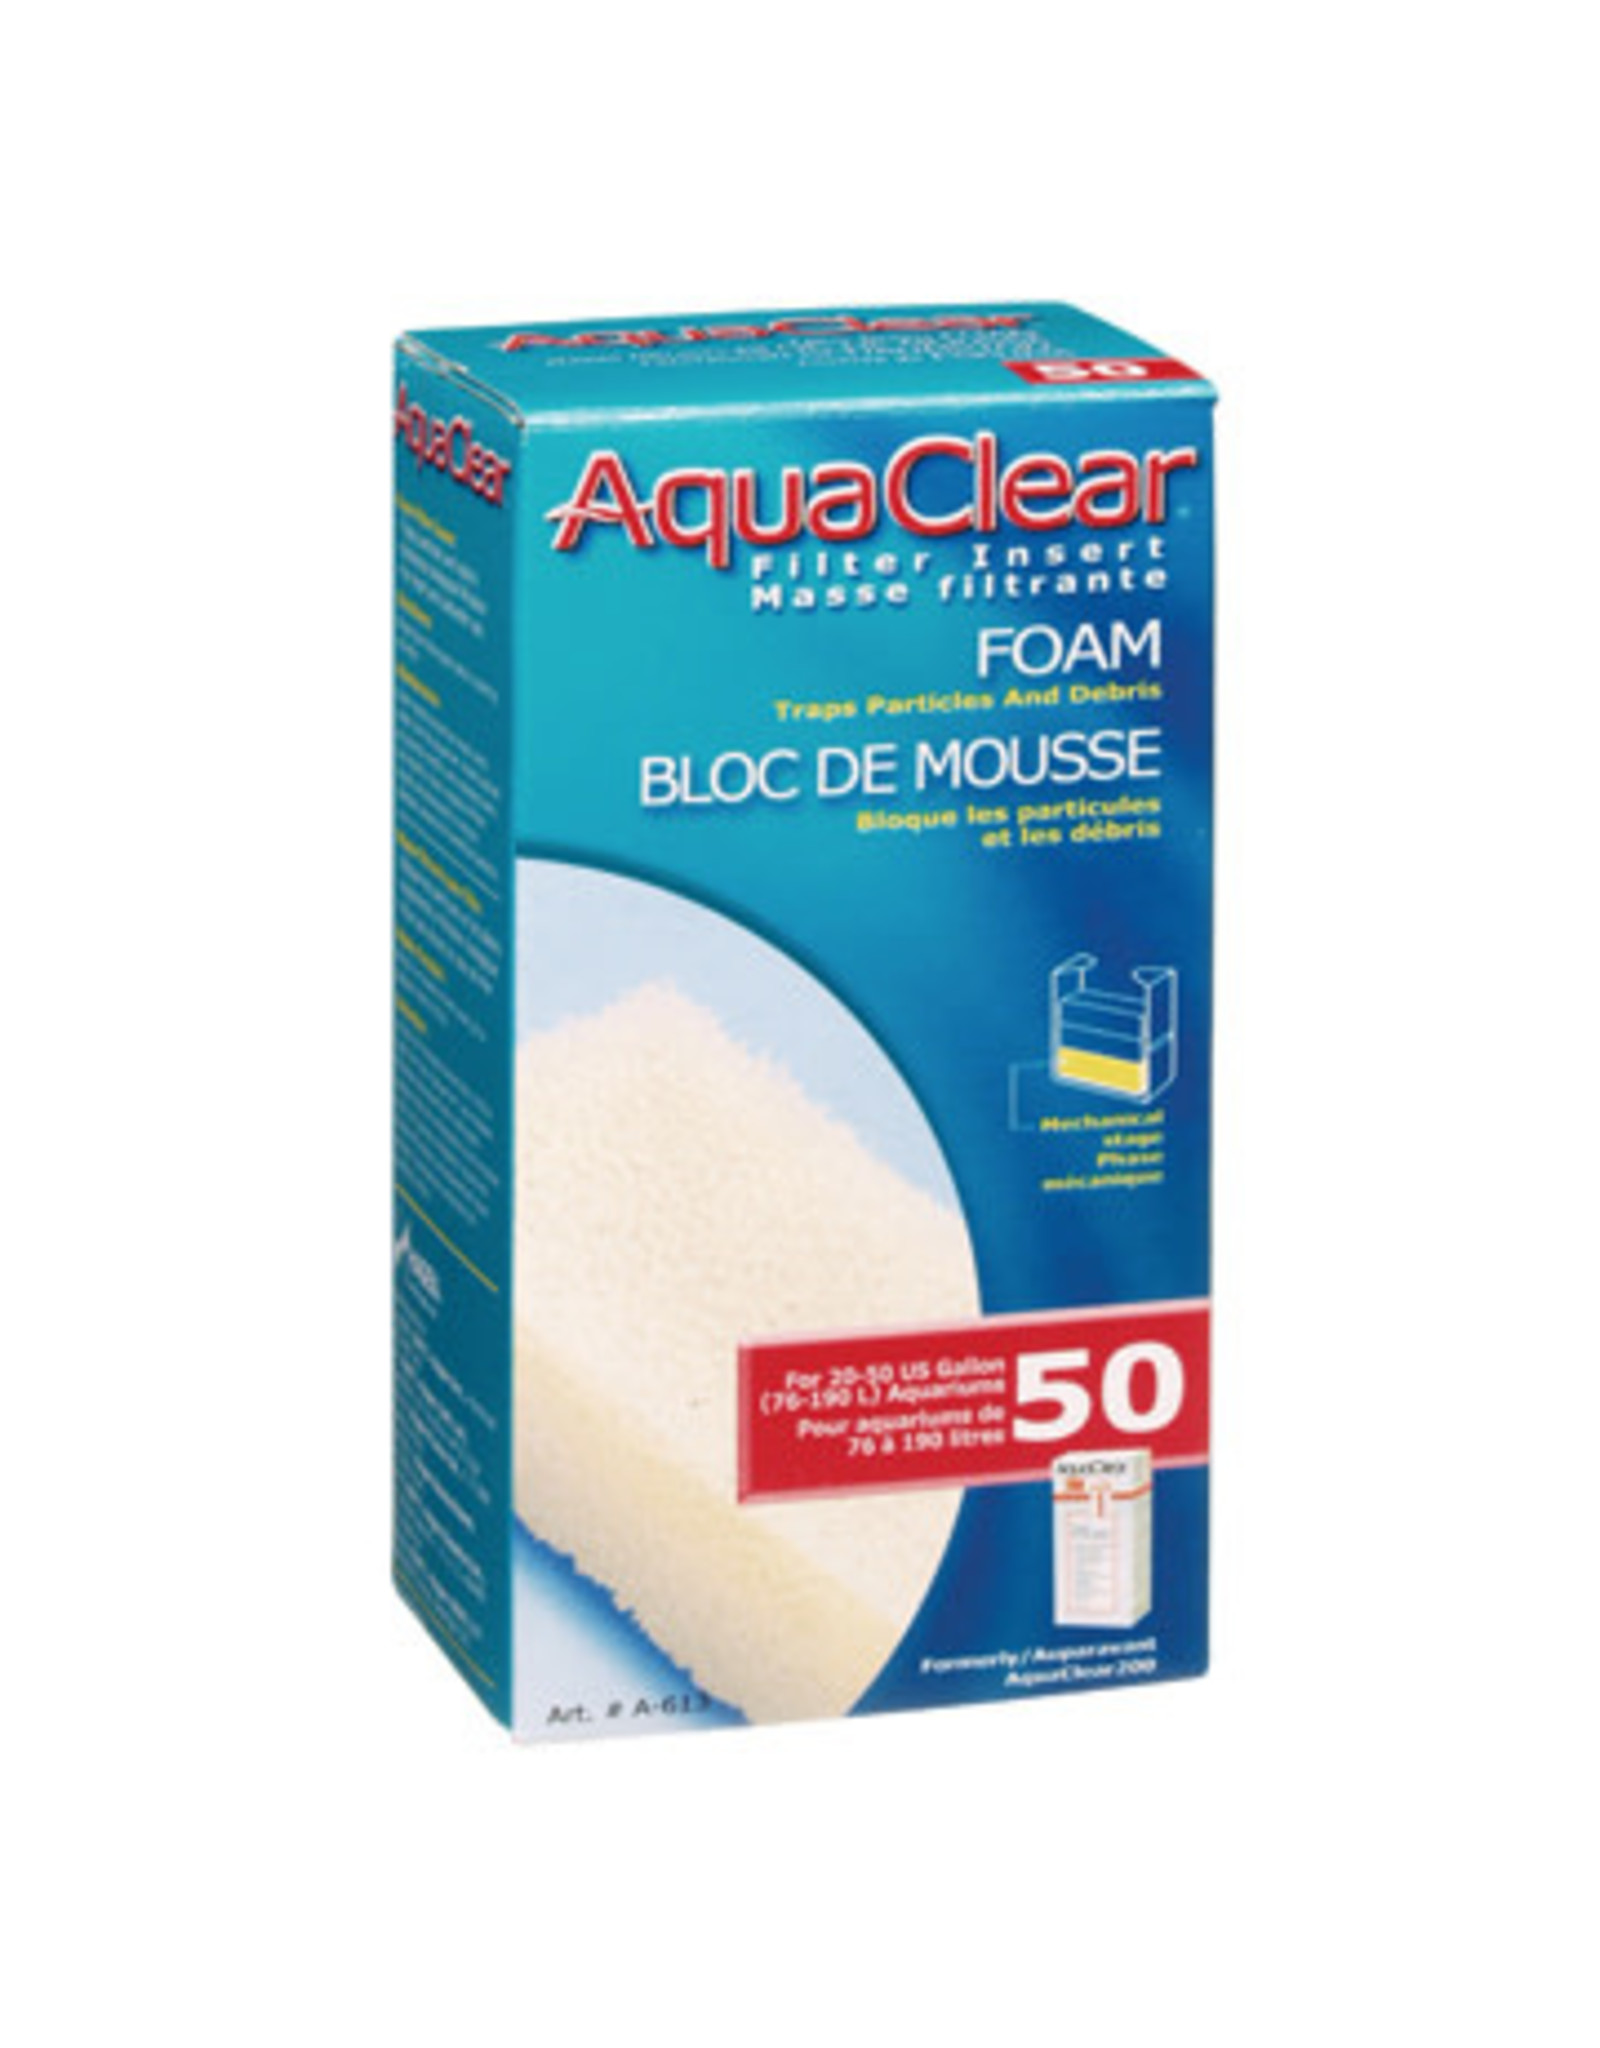 AquaClear AquaClear 50 Foam Filter Insert